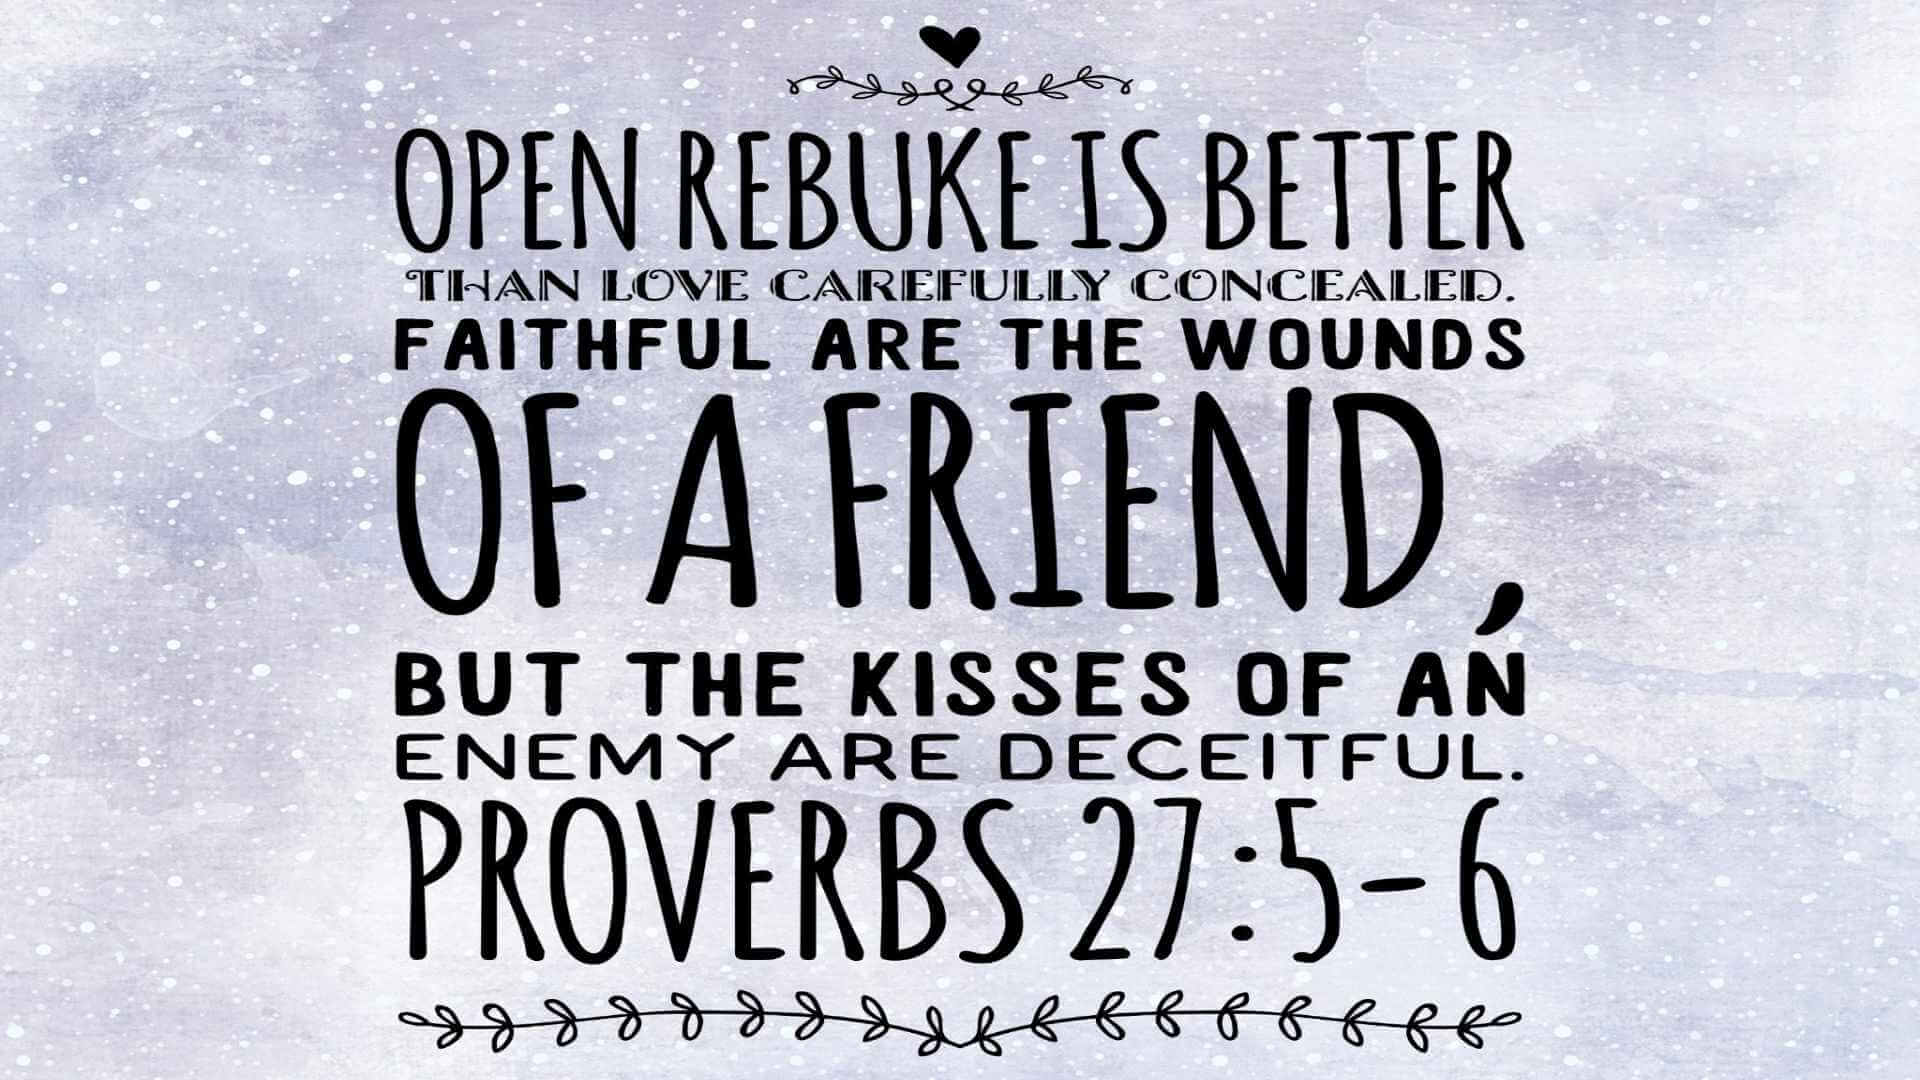 Proverbs-27-6 - Faithful are the wounds of a friend; profuse are the kisses of an enemy.